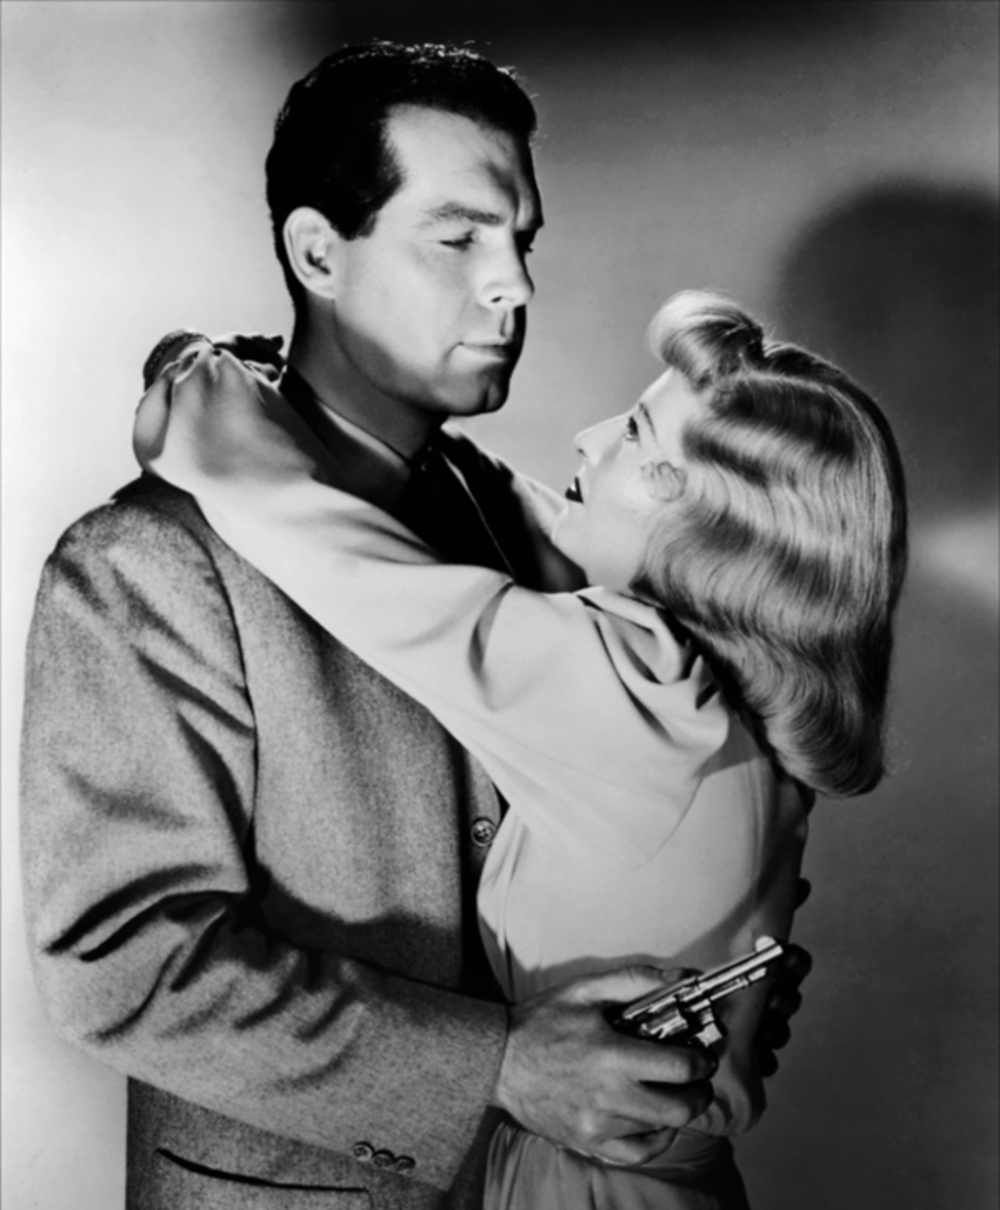 """There are of course three movie stars in this picture, Fred MacMurray, Barbara Stanwyck, and a little Smith & Wesson Model 10. The movie was """"Double Indemnity"""" from 1944. (Picture courtesy range365.com)."""